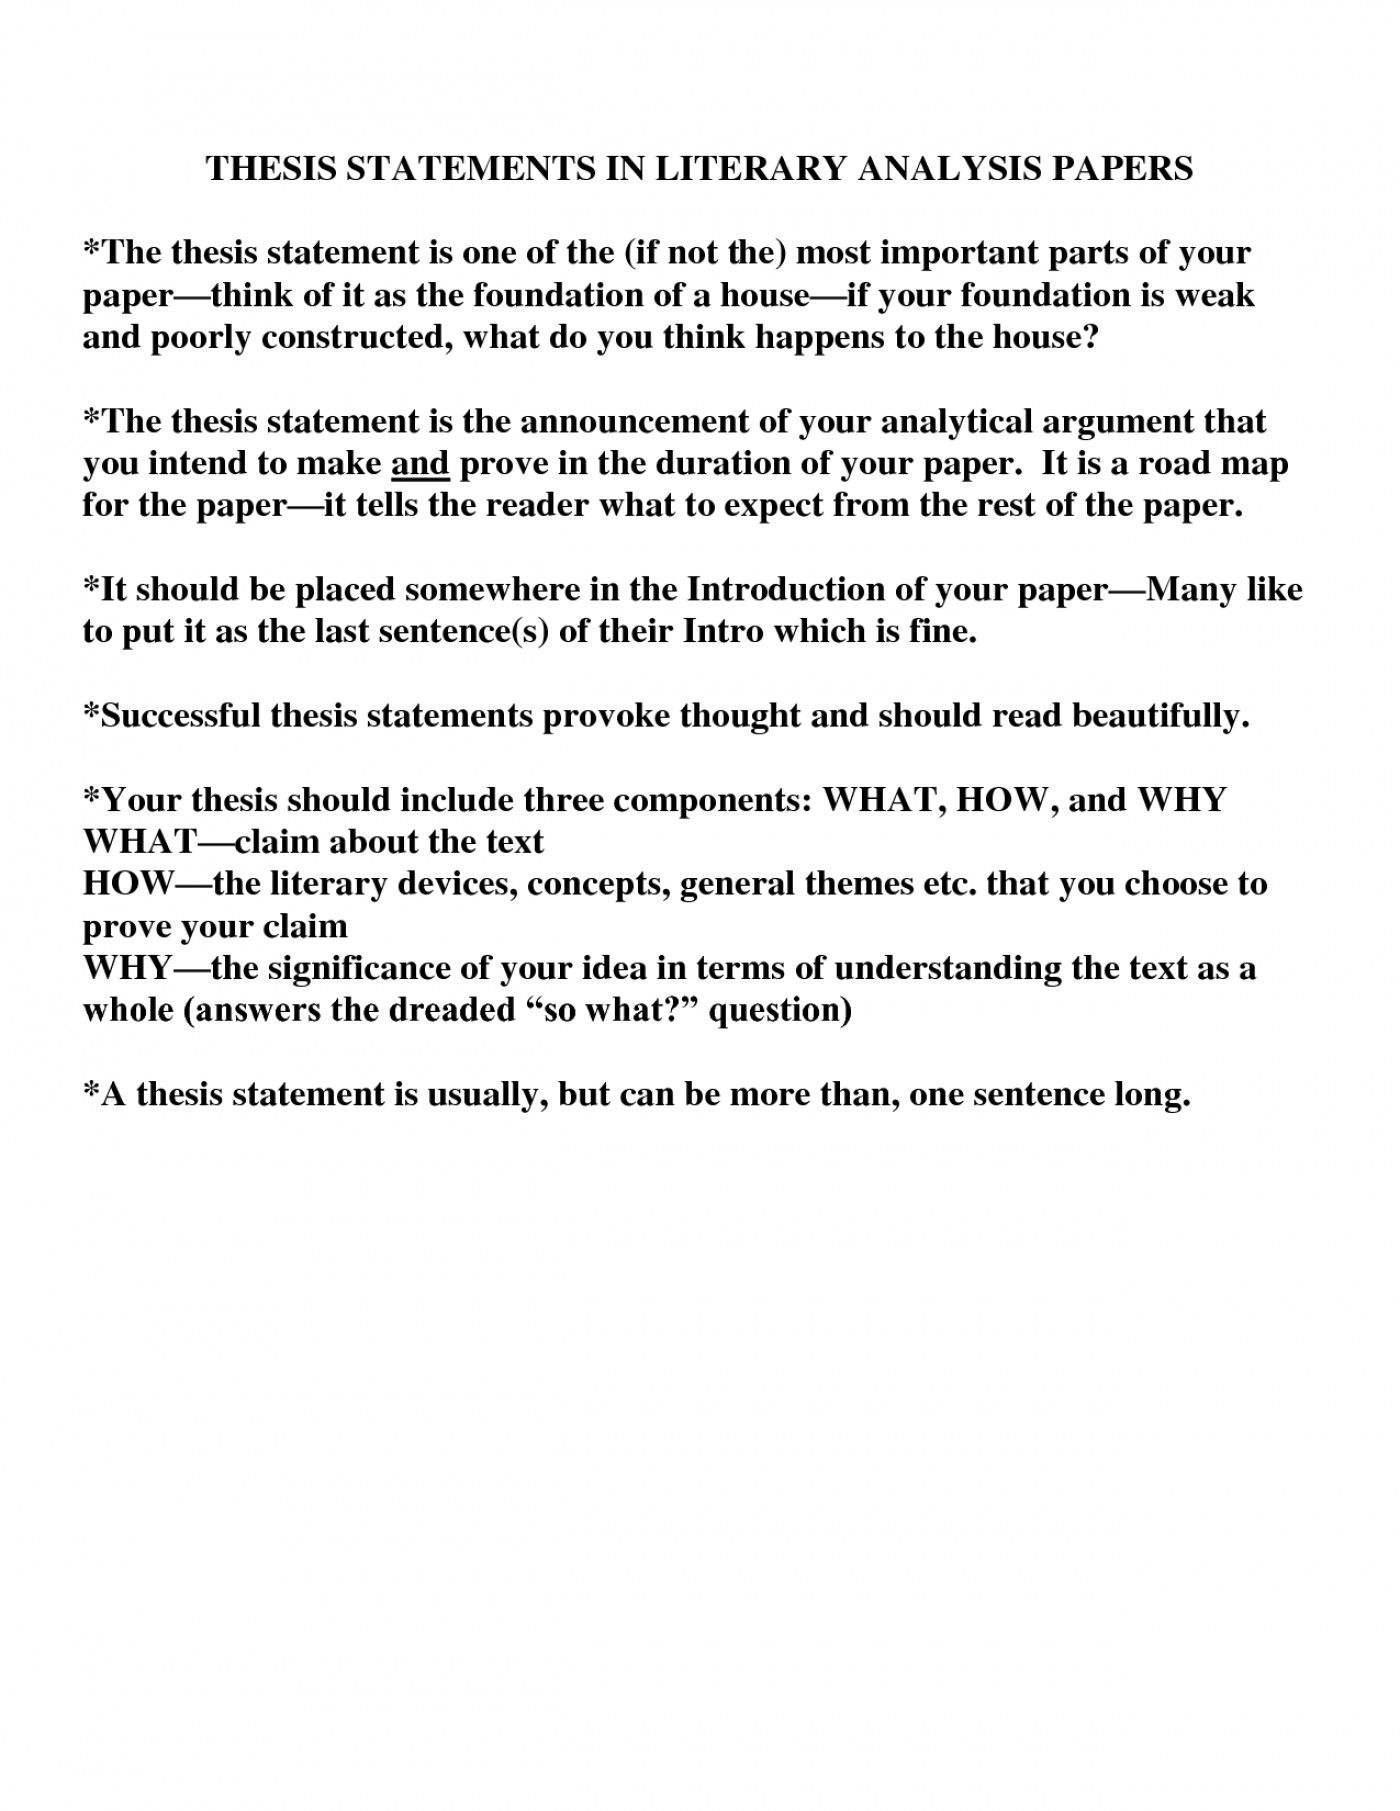 006 Img151266 Thesis For Research Wonderful A Paper Statement On The Holocaust Free Generator Example Pdf 1400